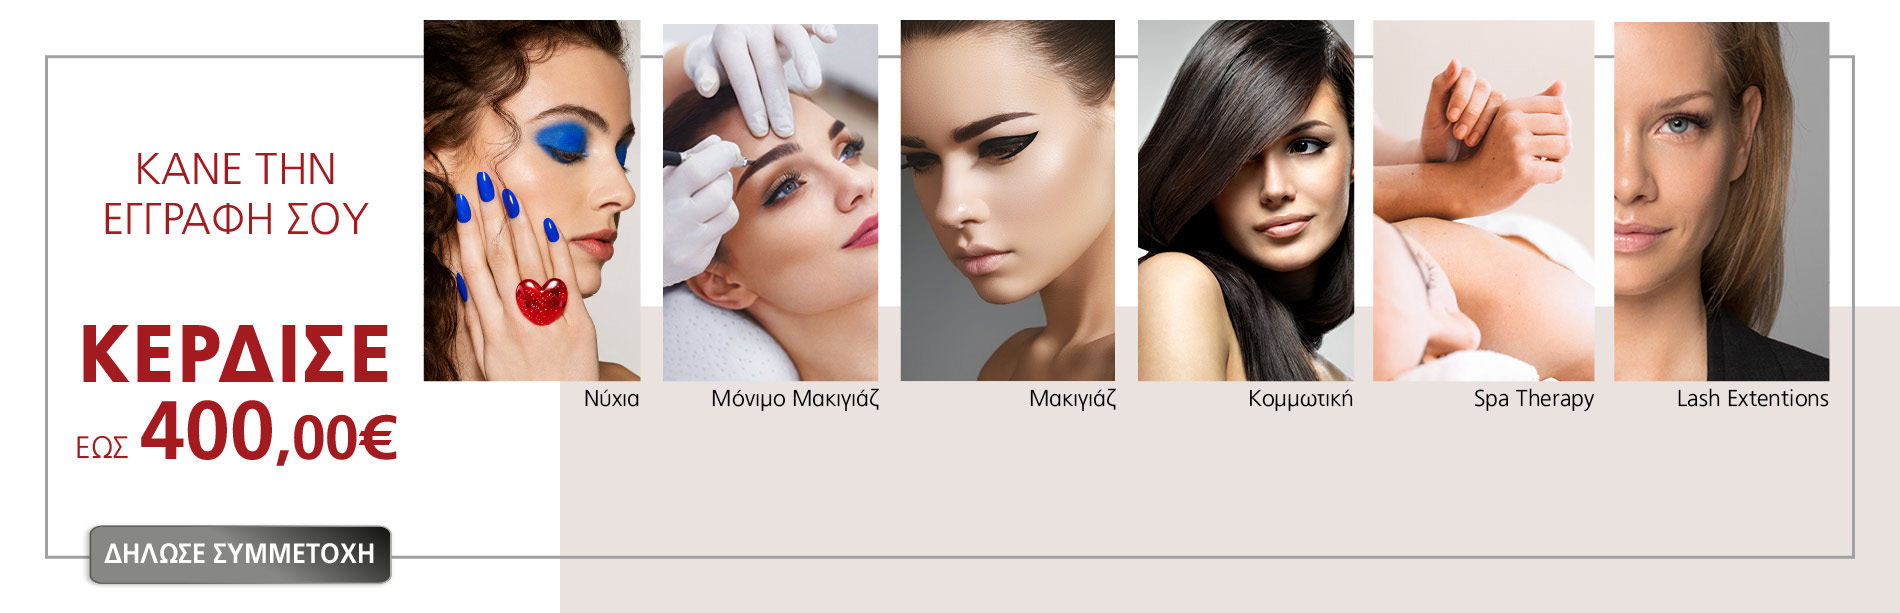 evabeauty-early-booking-discount1